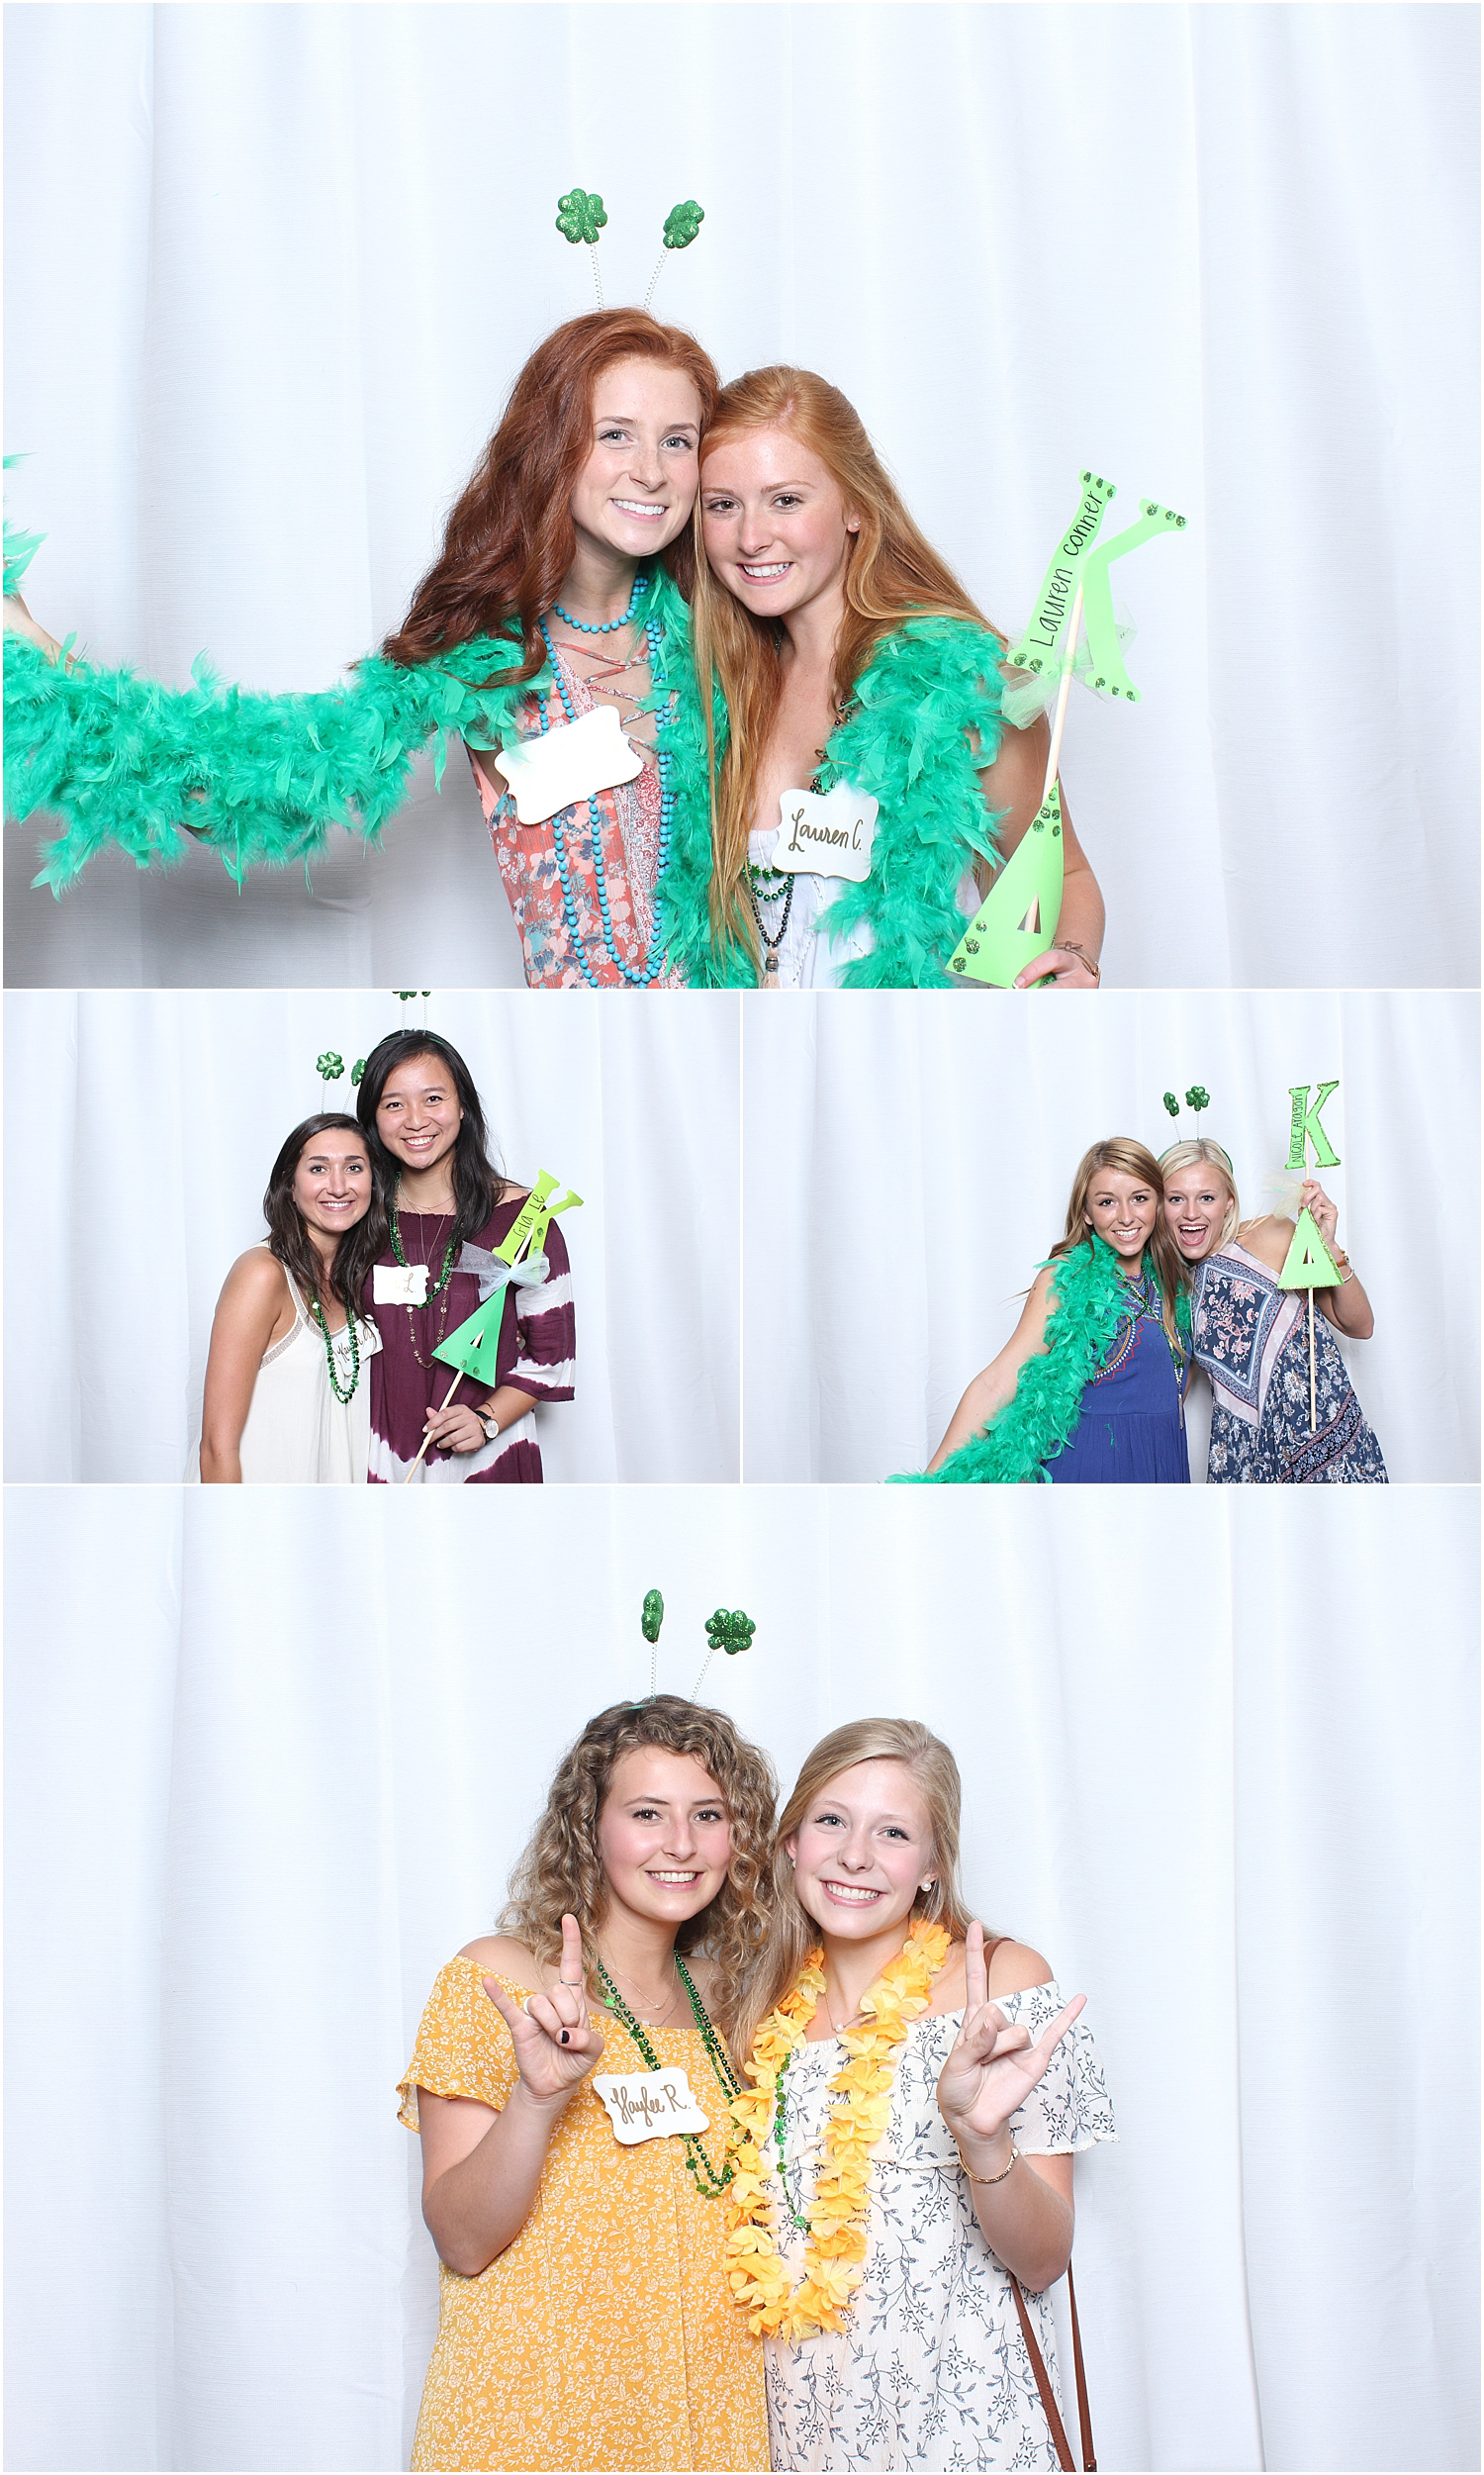 Austin Photo Booth - Kappa Delta Bid Day-10.jpg